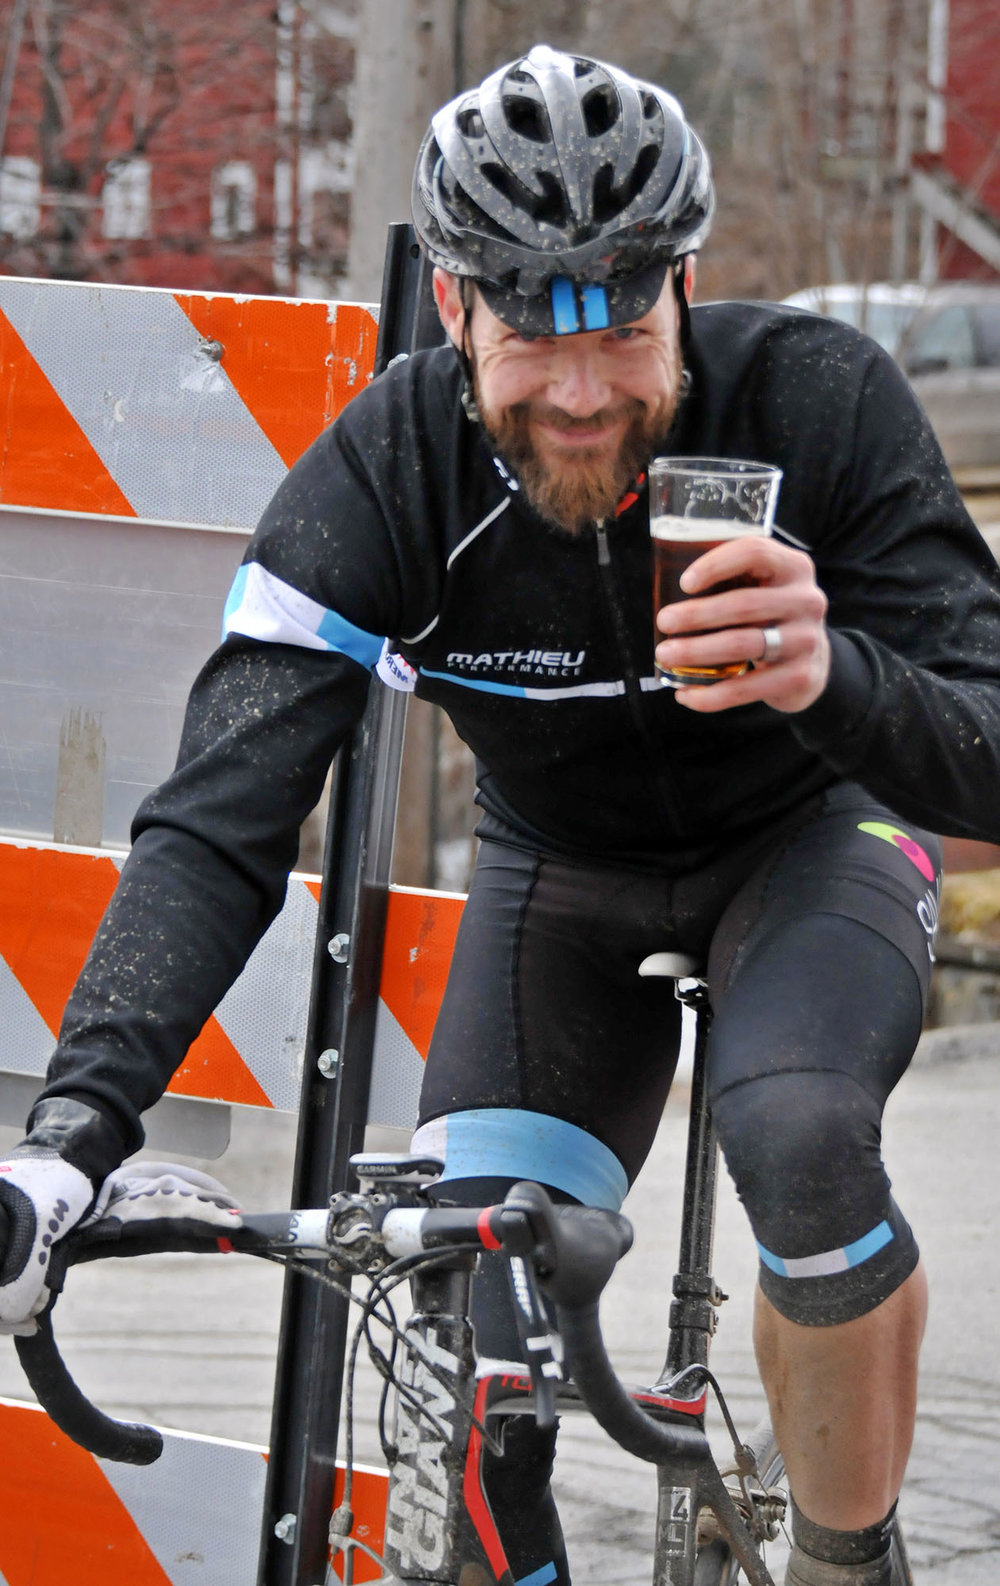 Brown's Brewing is a sponsor of the race and this rider is celebrating achieving his race finish goal. © Dave Kraus/krausgrafik.com